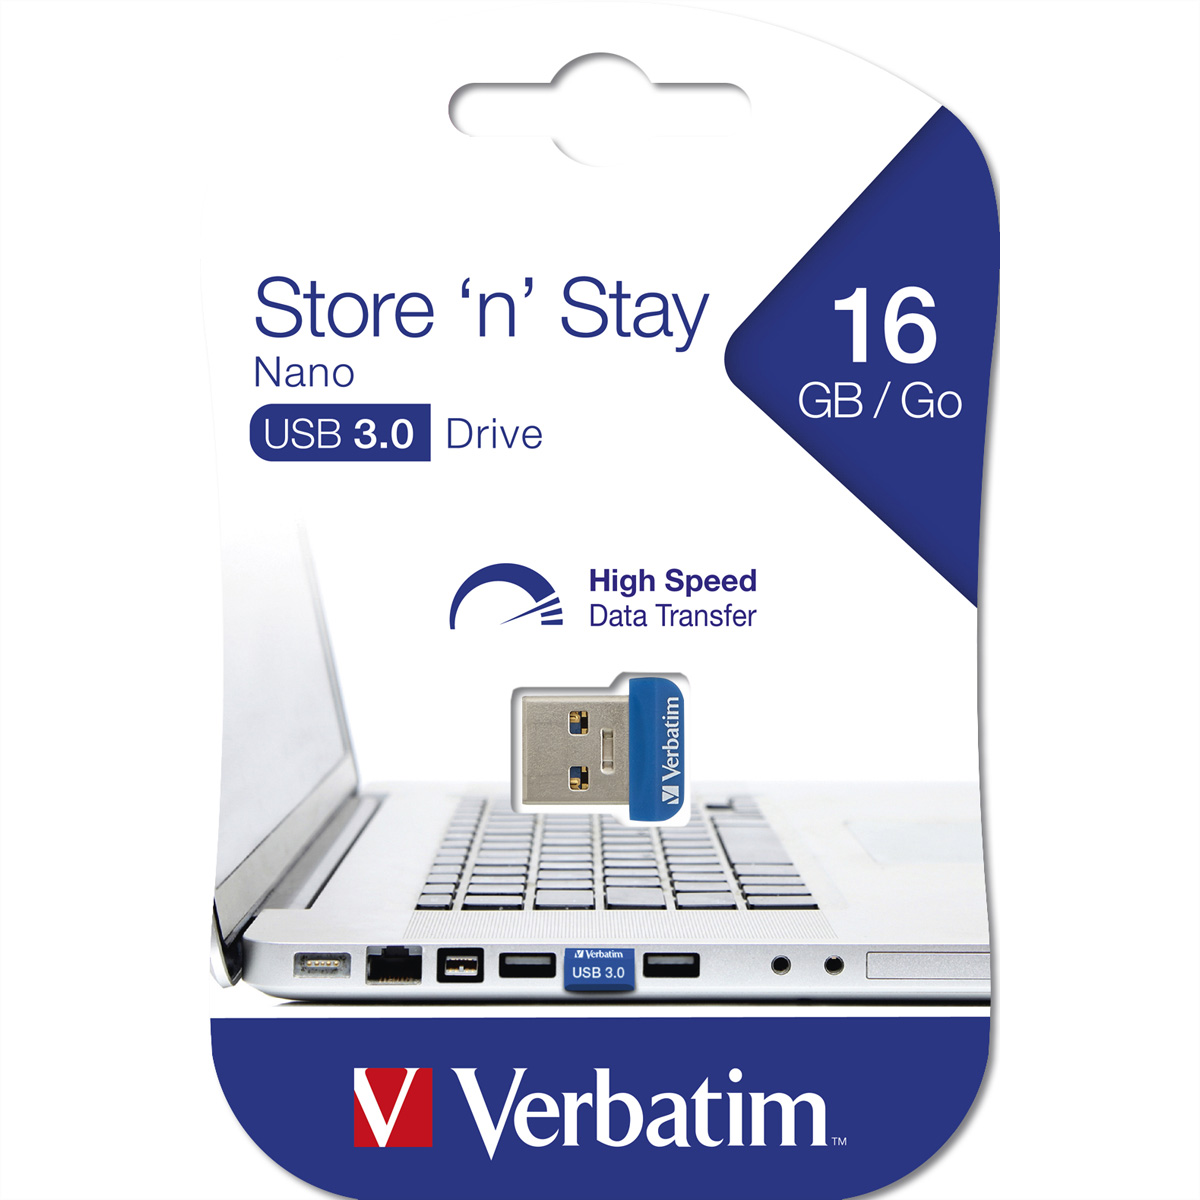 VERBATIM Store ''n'' Stay Nano USB 3.0, 16GB